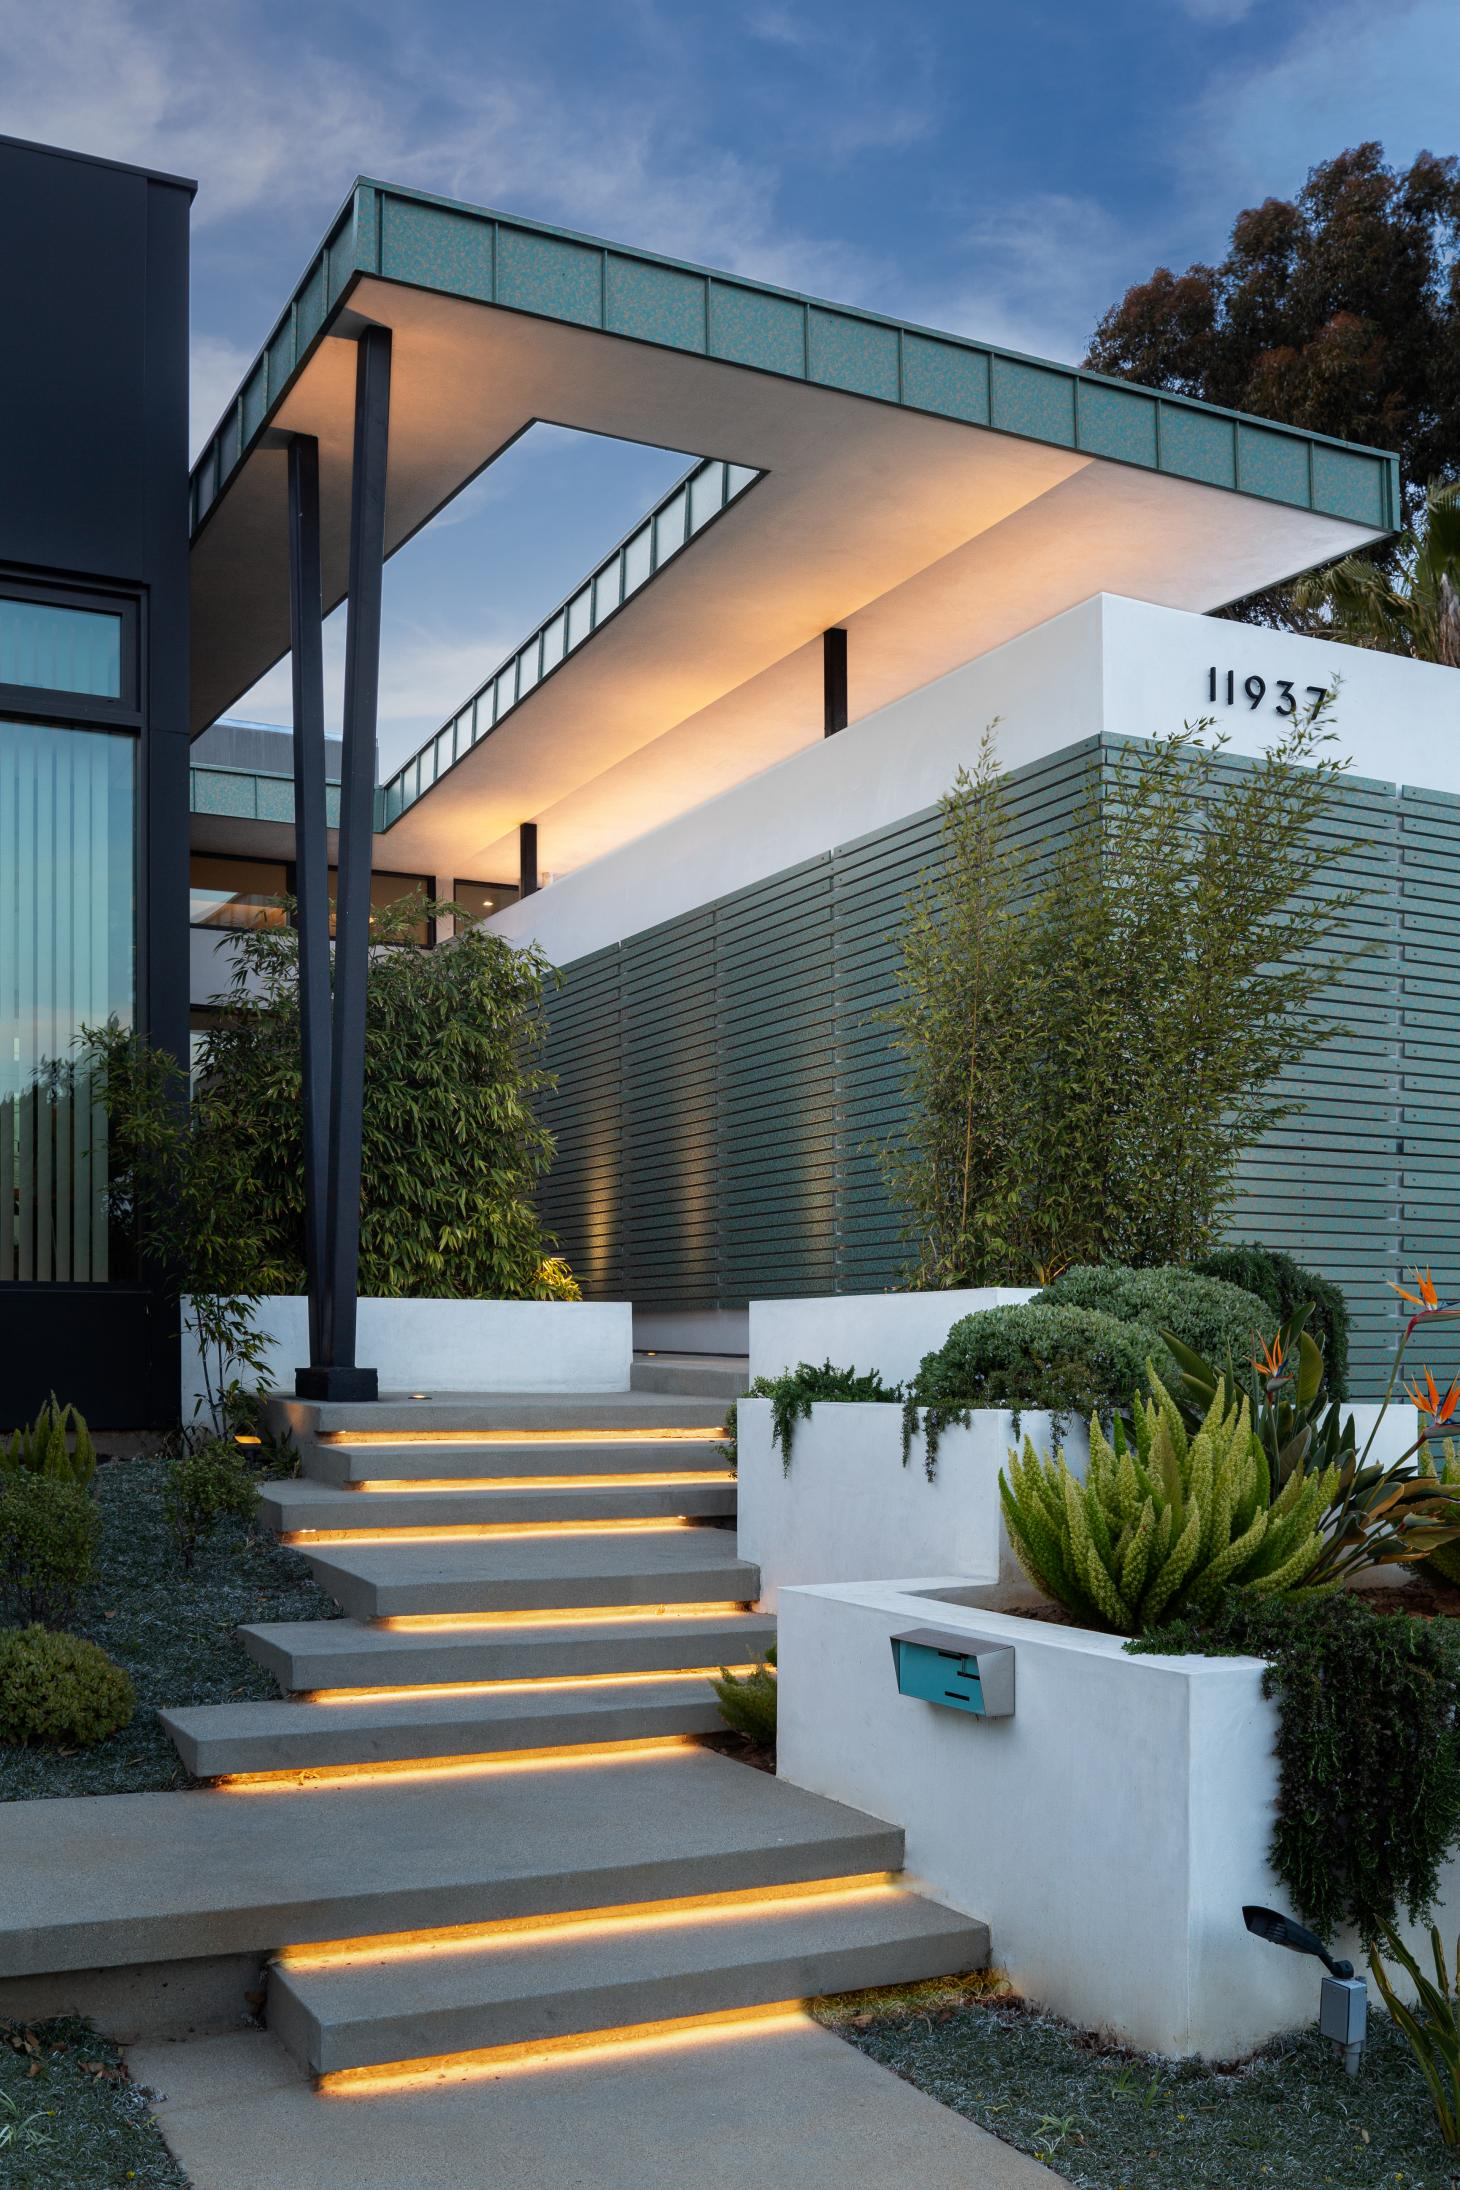 dramatic night view of front entrance at Mar Vista Residence by Tim Gorter Architect